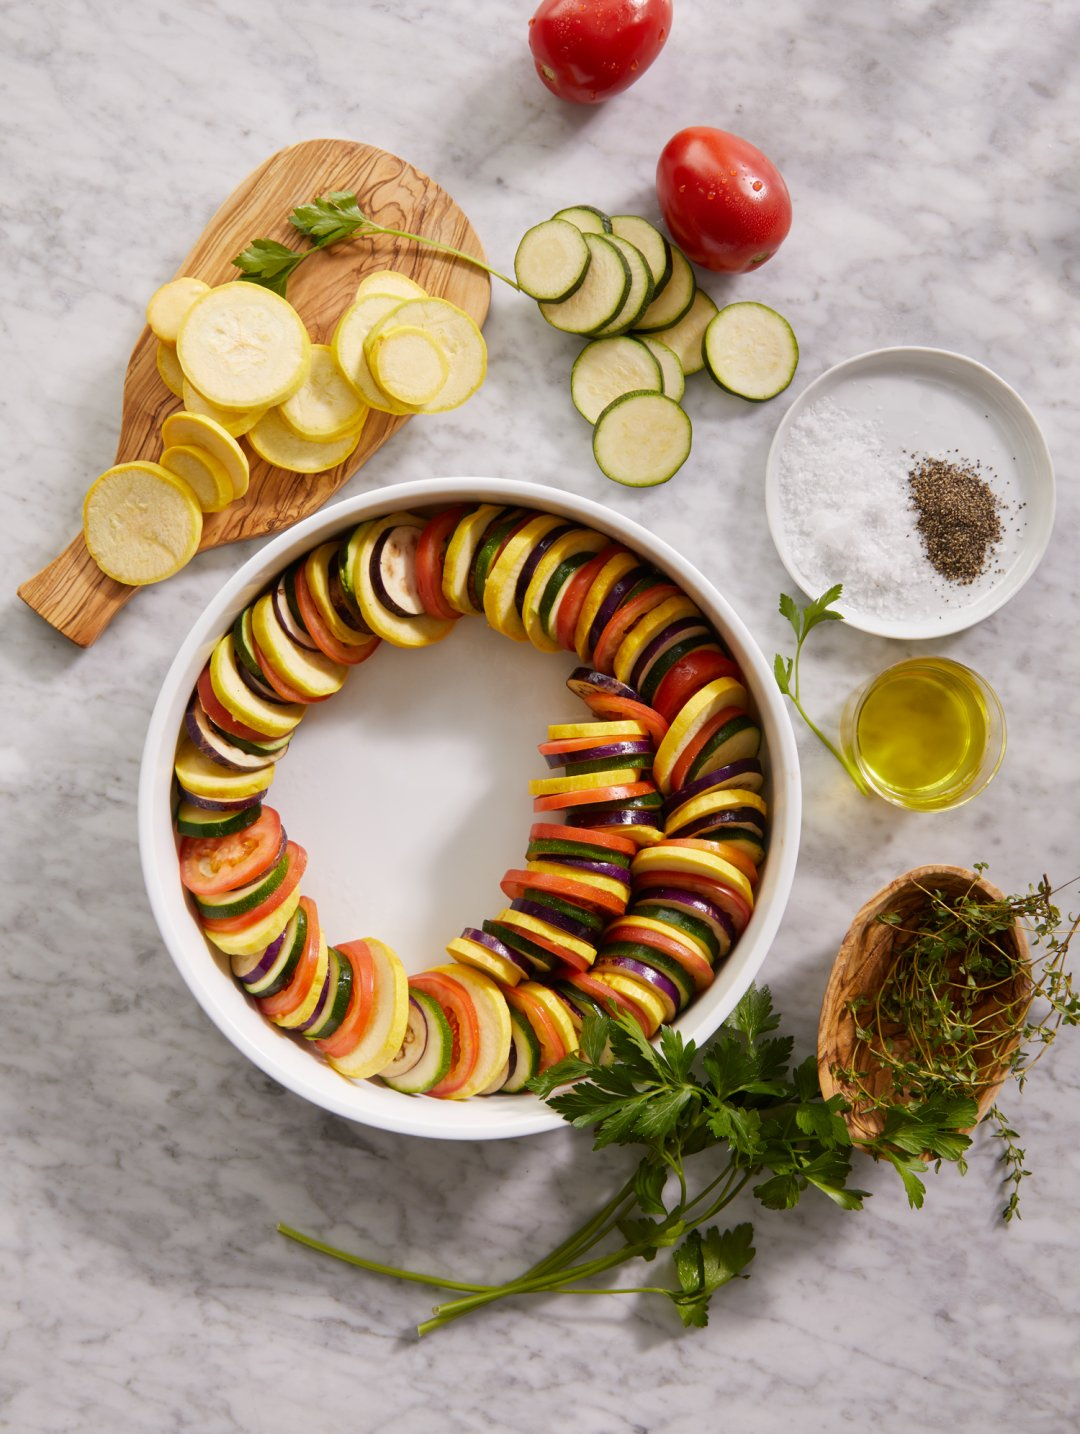 Thin sliced vegetables being placed in a round baking dish to make ratatouille